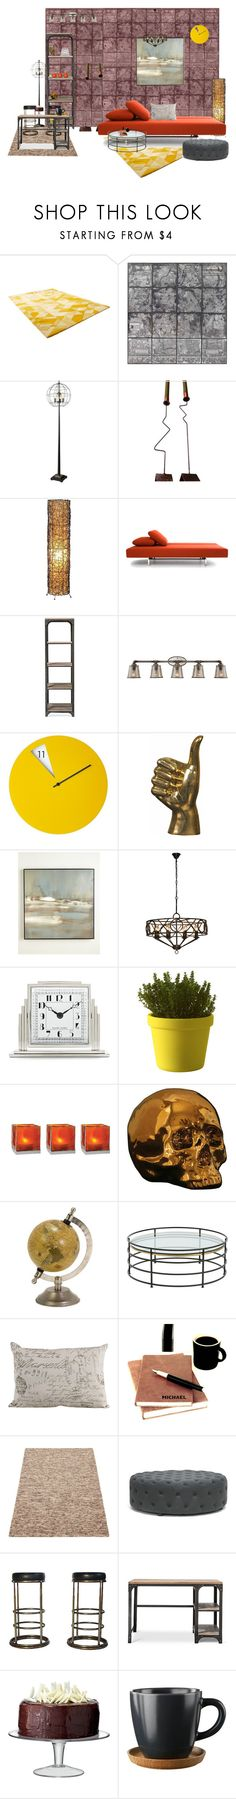 """""""Untitled #1409"""" by lindagama on Polyvore featuring interior, interiors, interior design, home, home decor, interior decorating, Cyan Design, Universal Lighting and Decor, Benson-Cobb Studios and Ralph Lauren Home"""